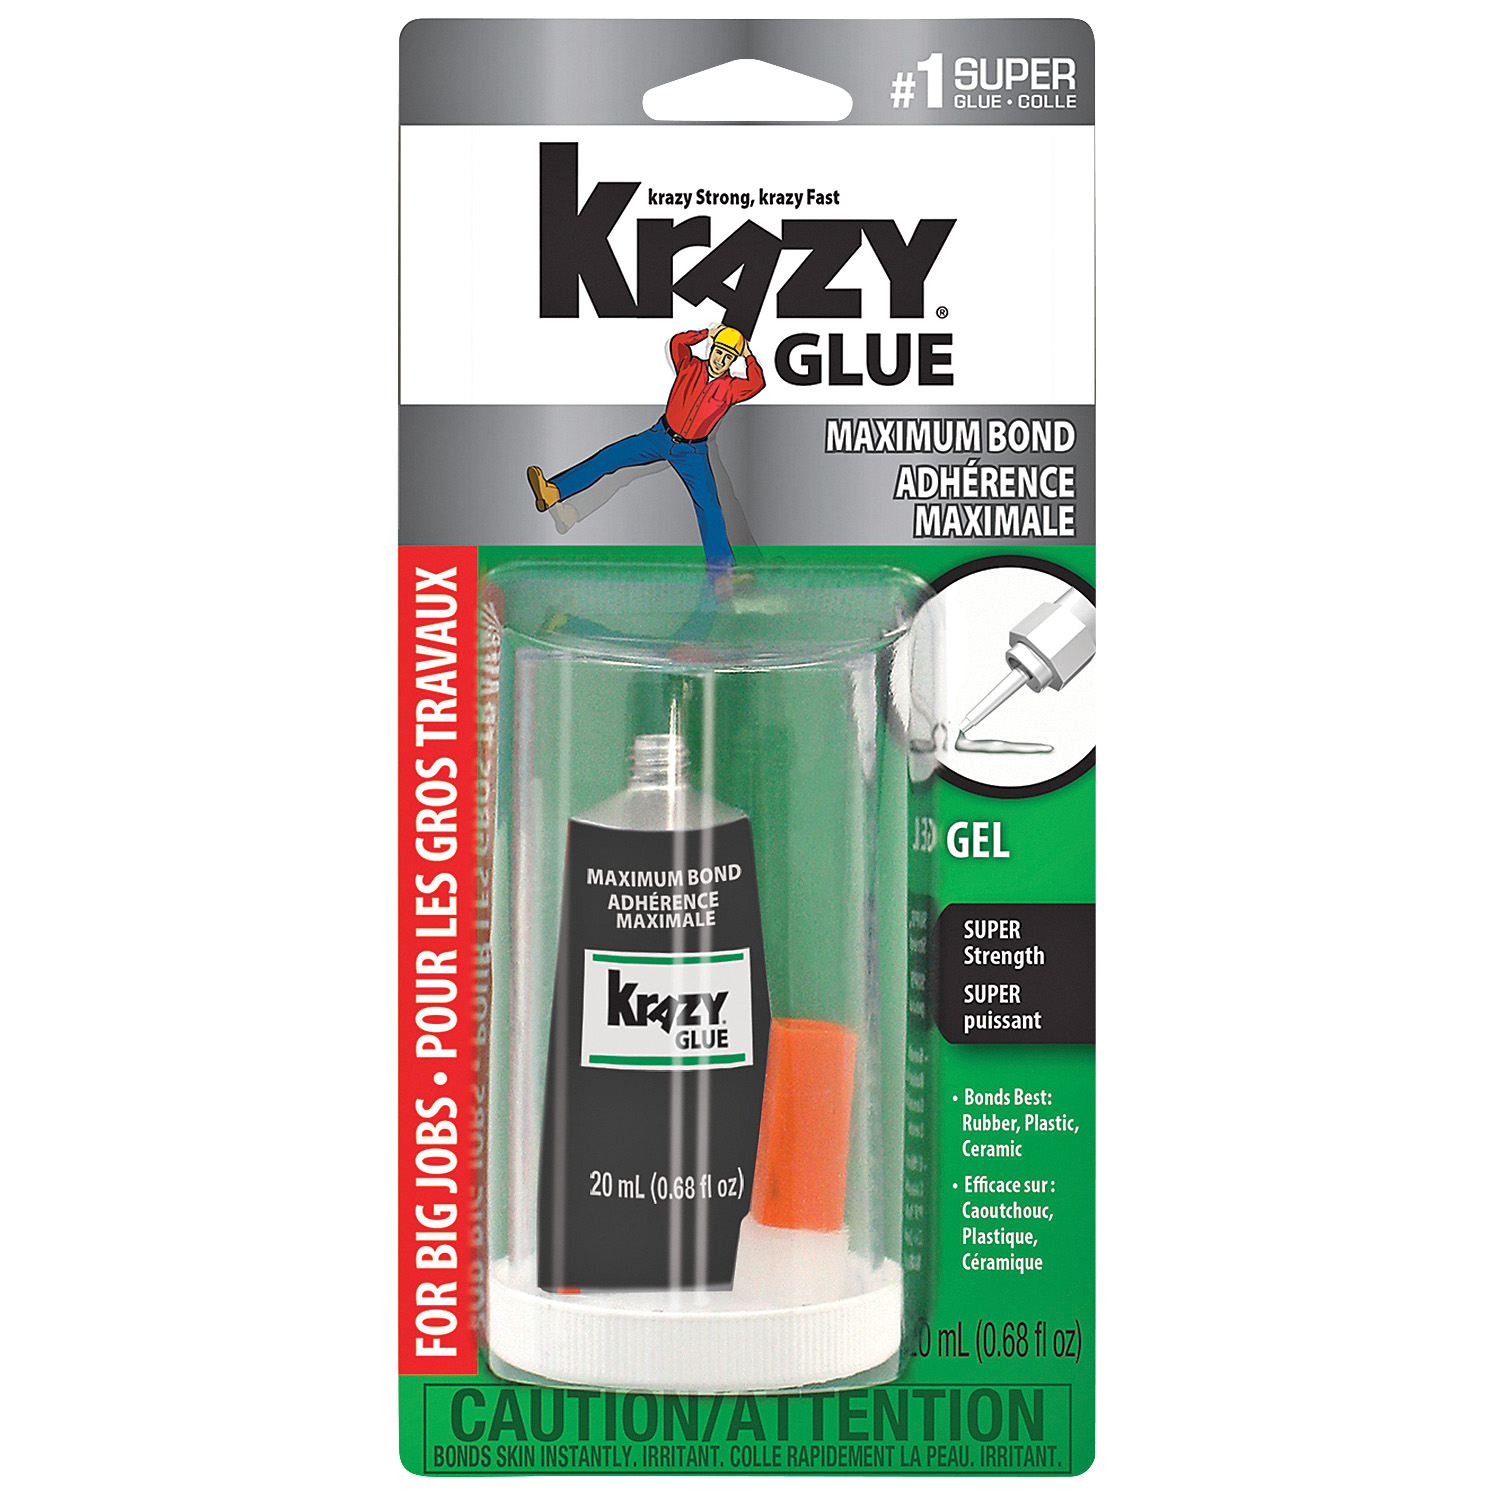 how to open krazy glue maximum bond